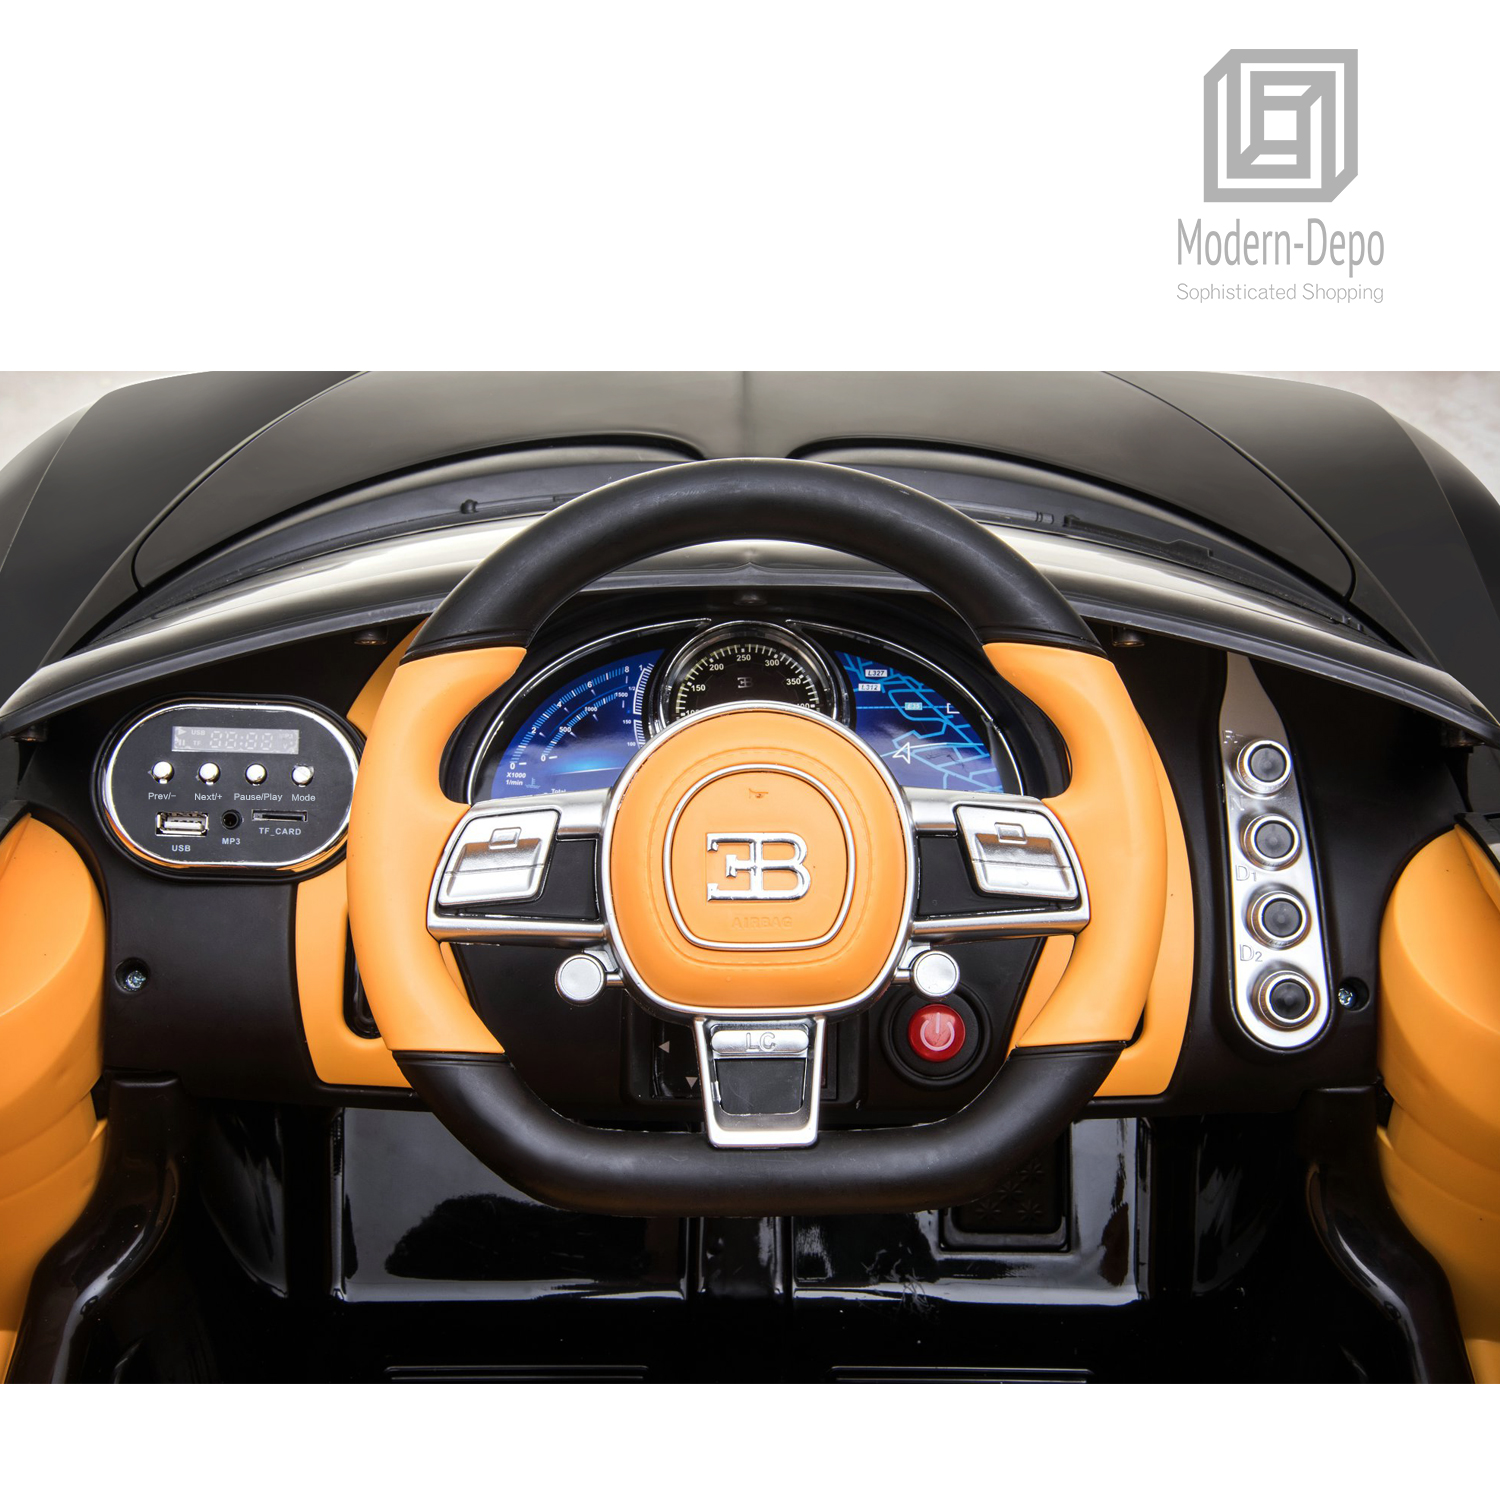 Bugatti-Chiron-12V-Kids-Ride-On-Car-with-Remote-Control-High-Speed-Motor miniature 14